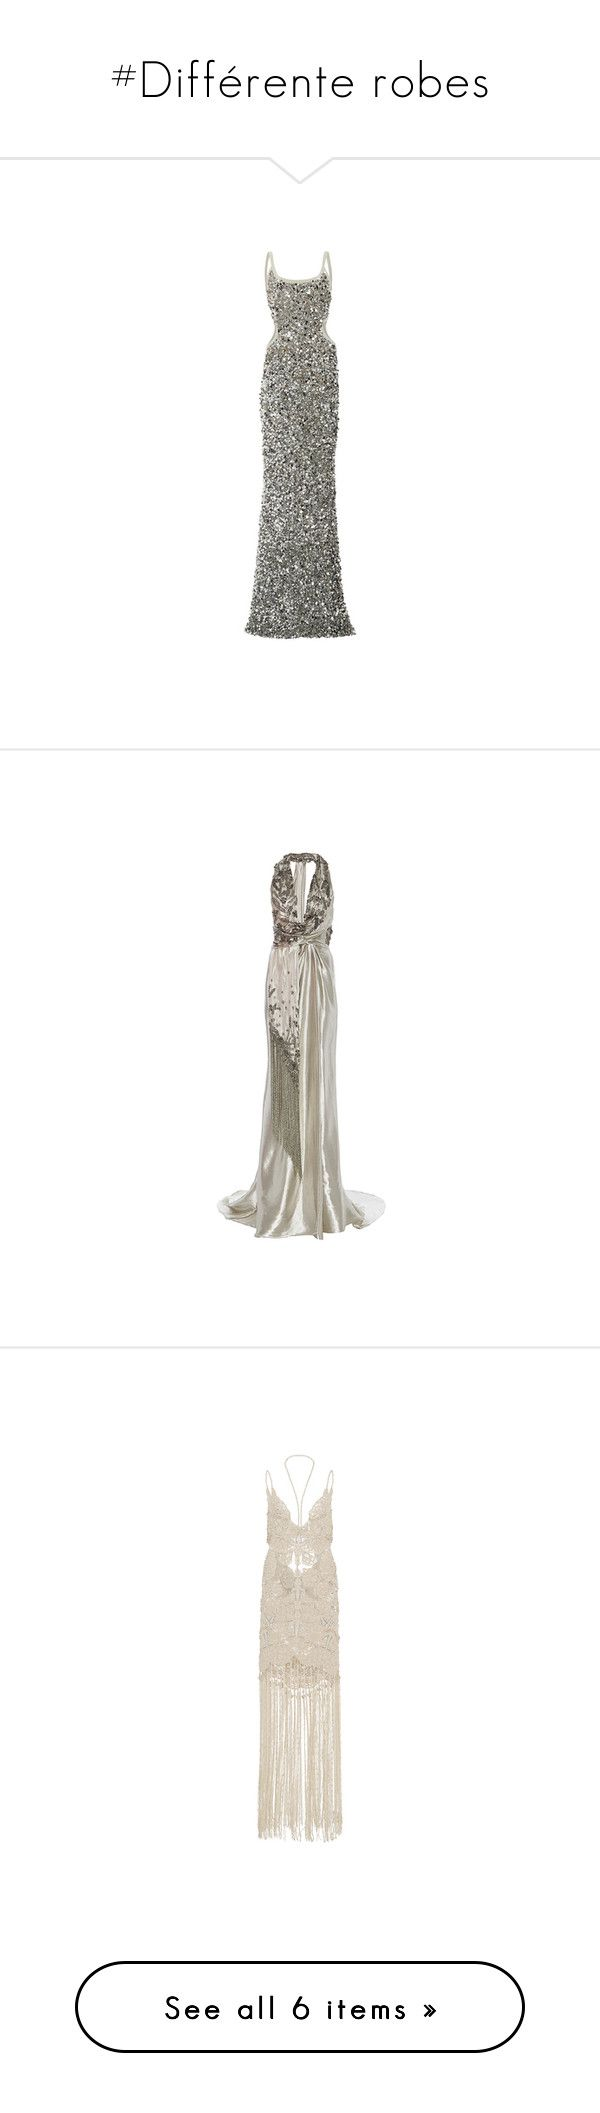 """""""#Différente robes"""" by lolgenie ❤ liked on Polyvore featuring dresses, gowns, cutout dresses, scoop-neck dresses, sequin dresses, full length gowns, full length sequin dress, marchesa, white halter dress and white gown"""